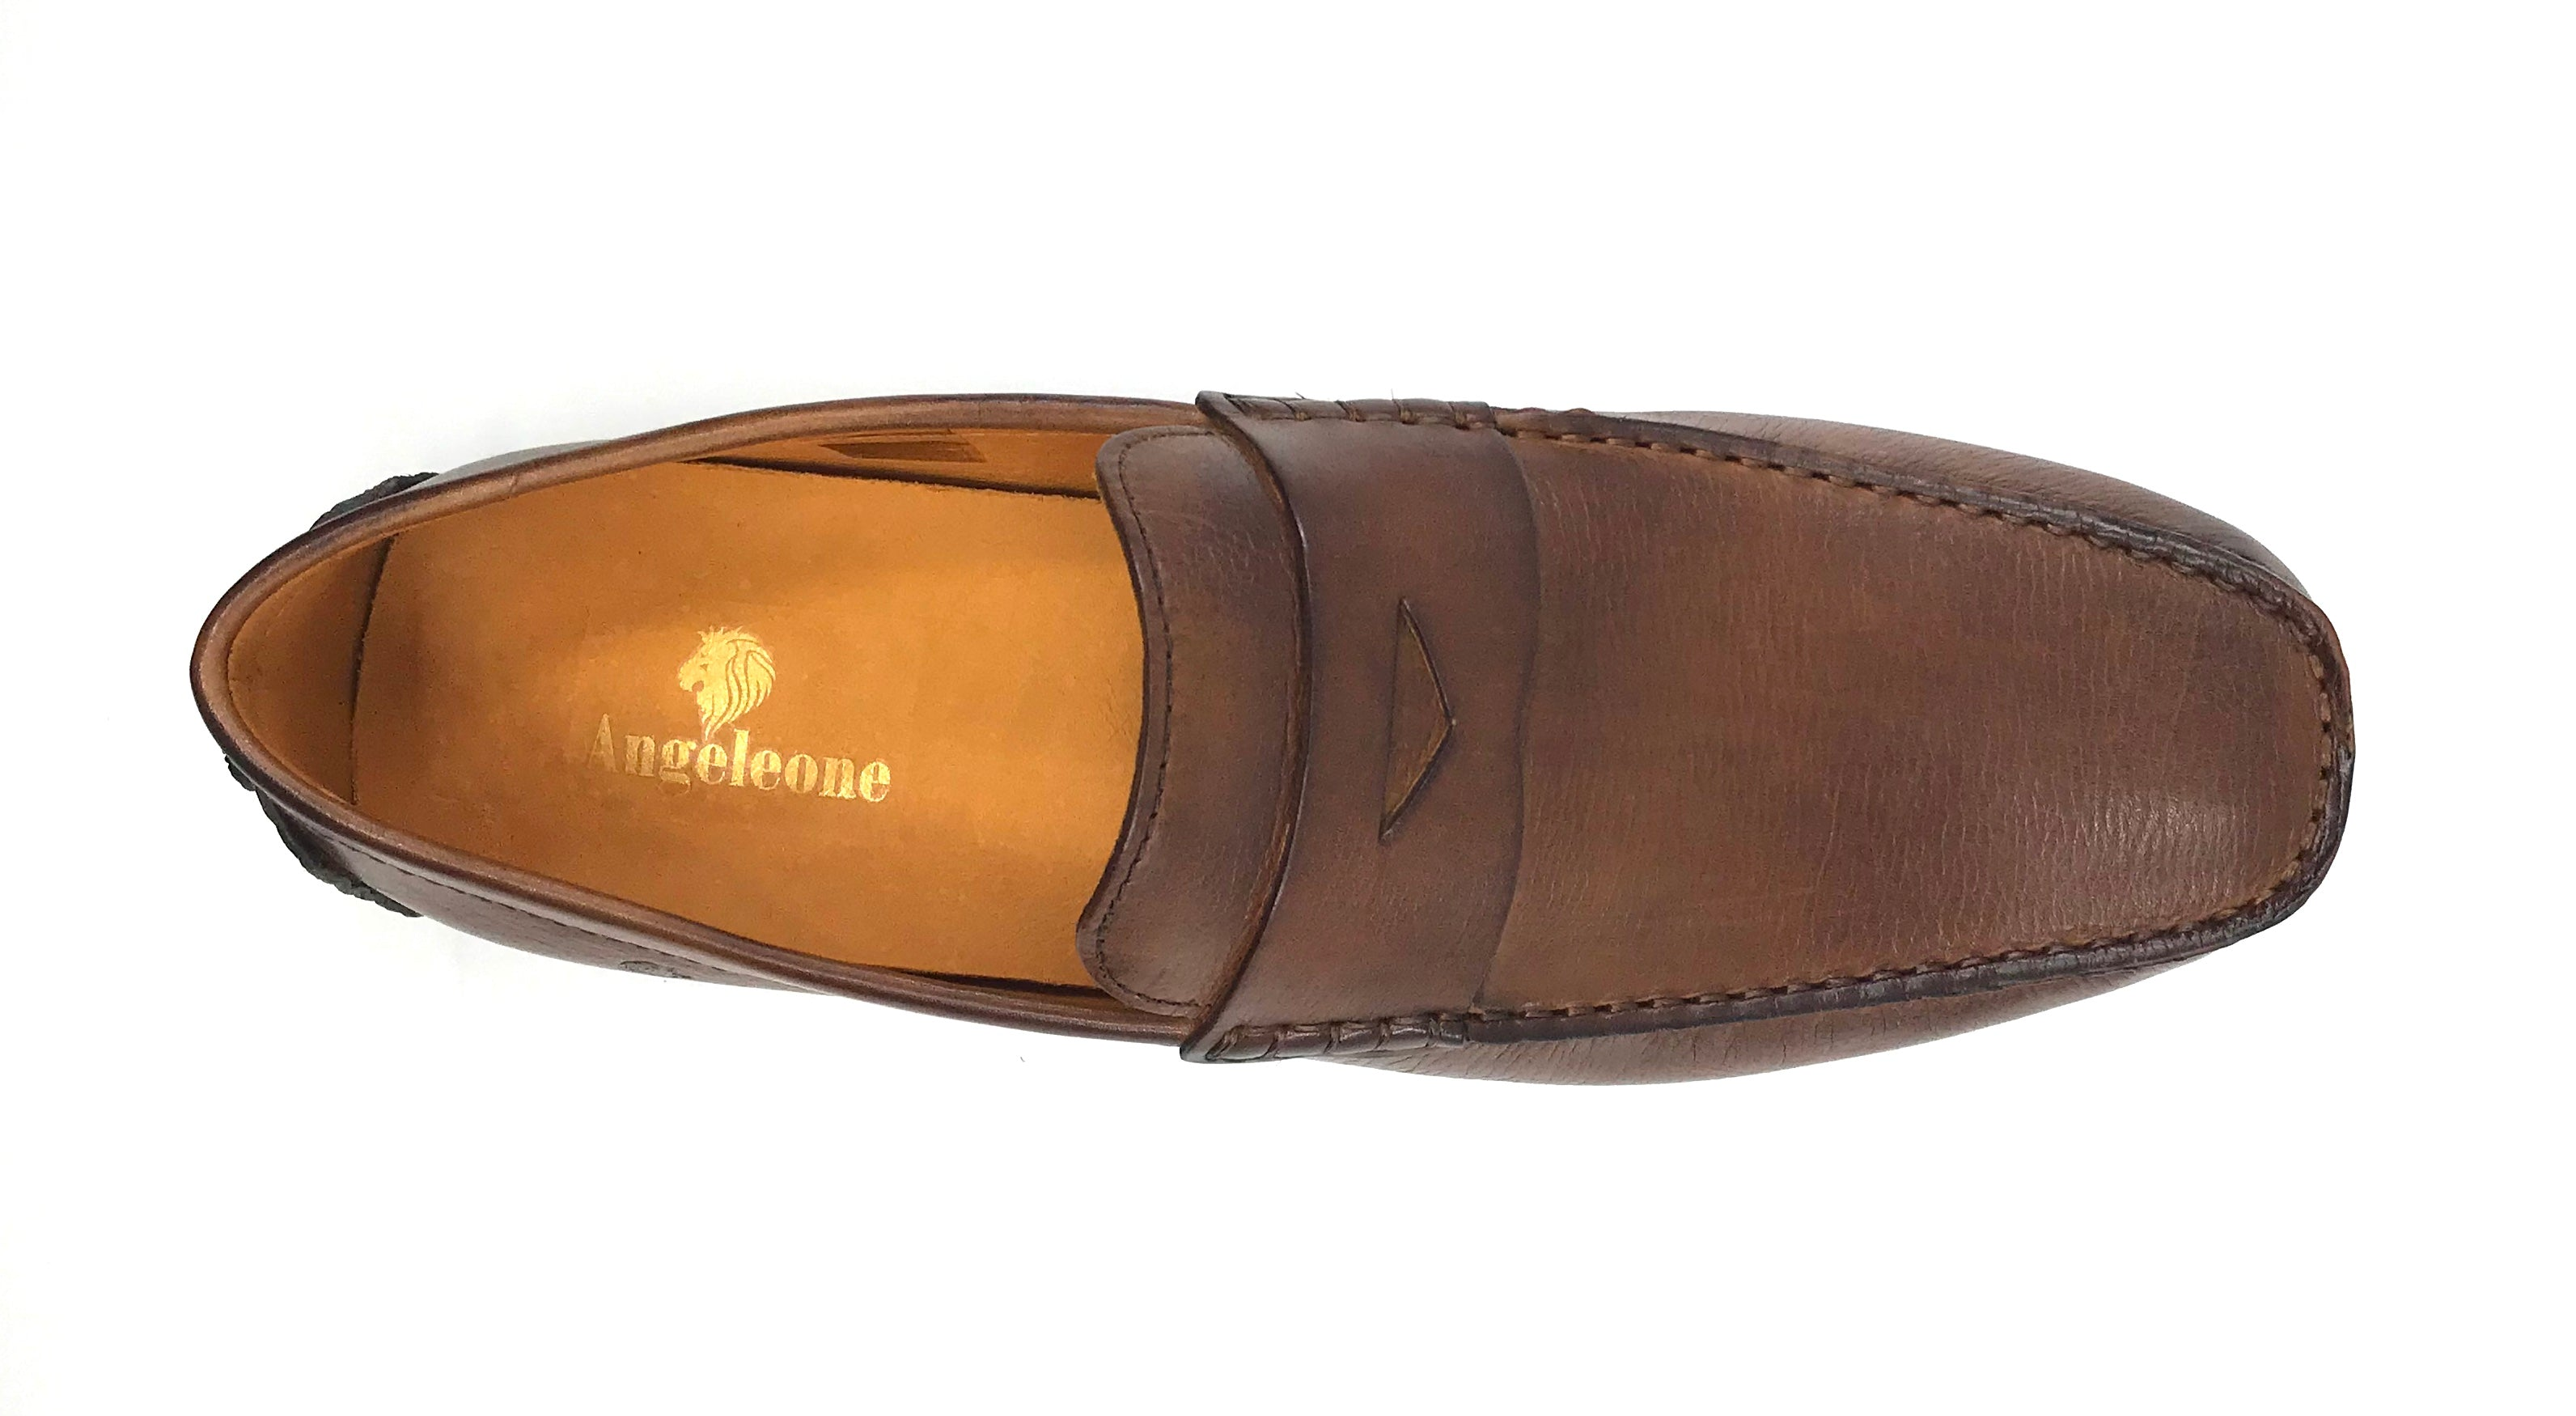 Benini by Angeleone - Italian Penny Loafer Driver